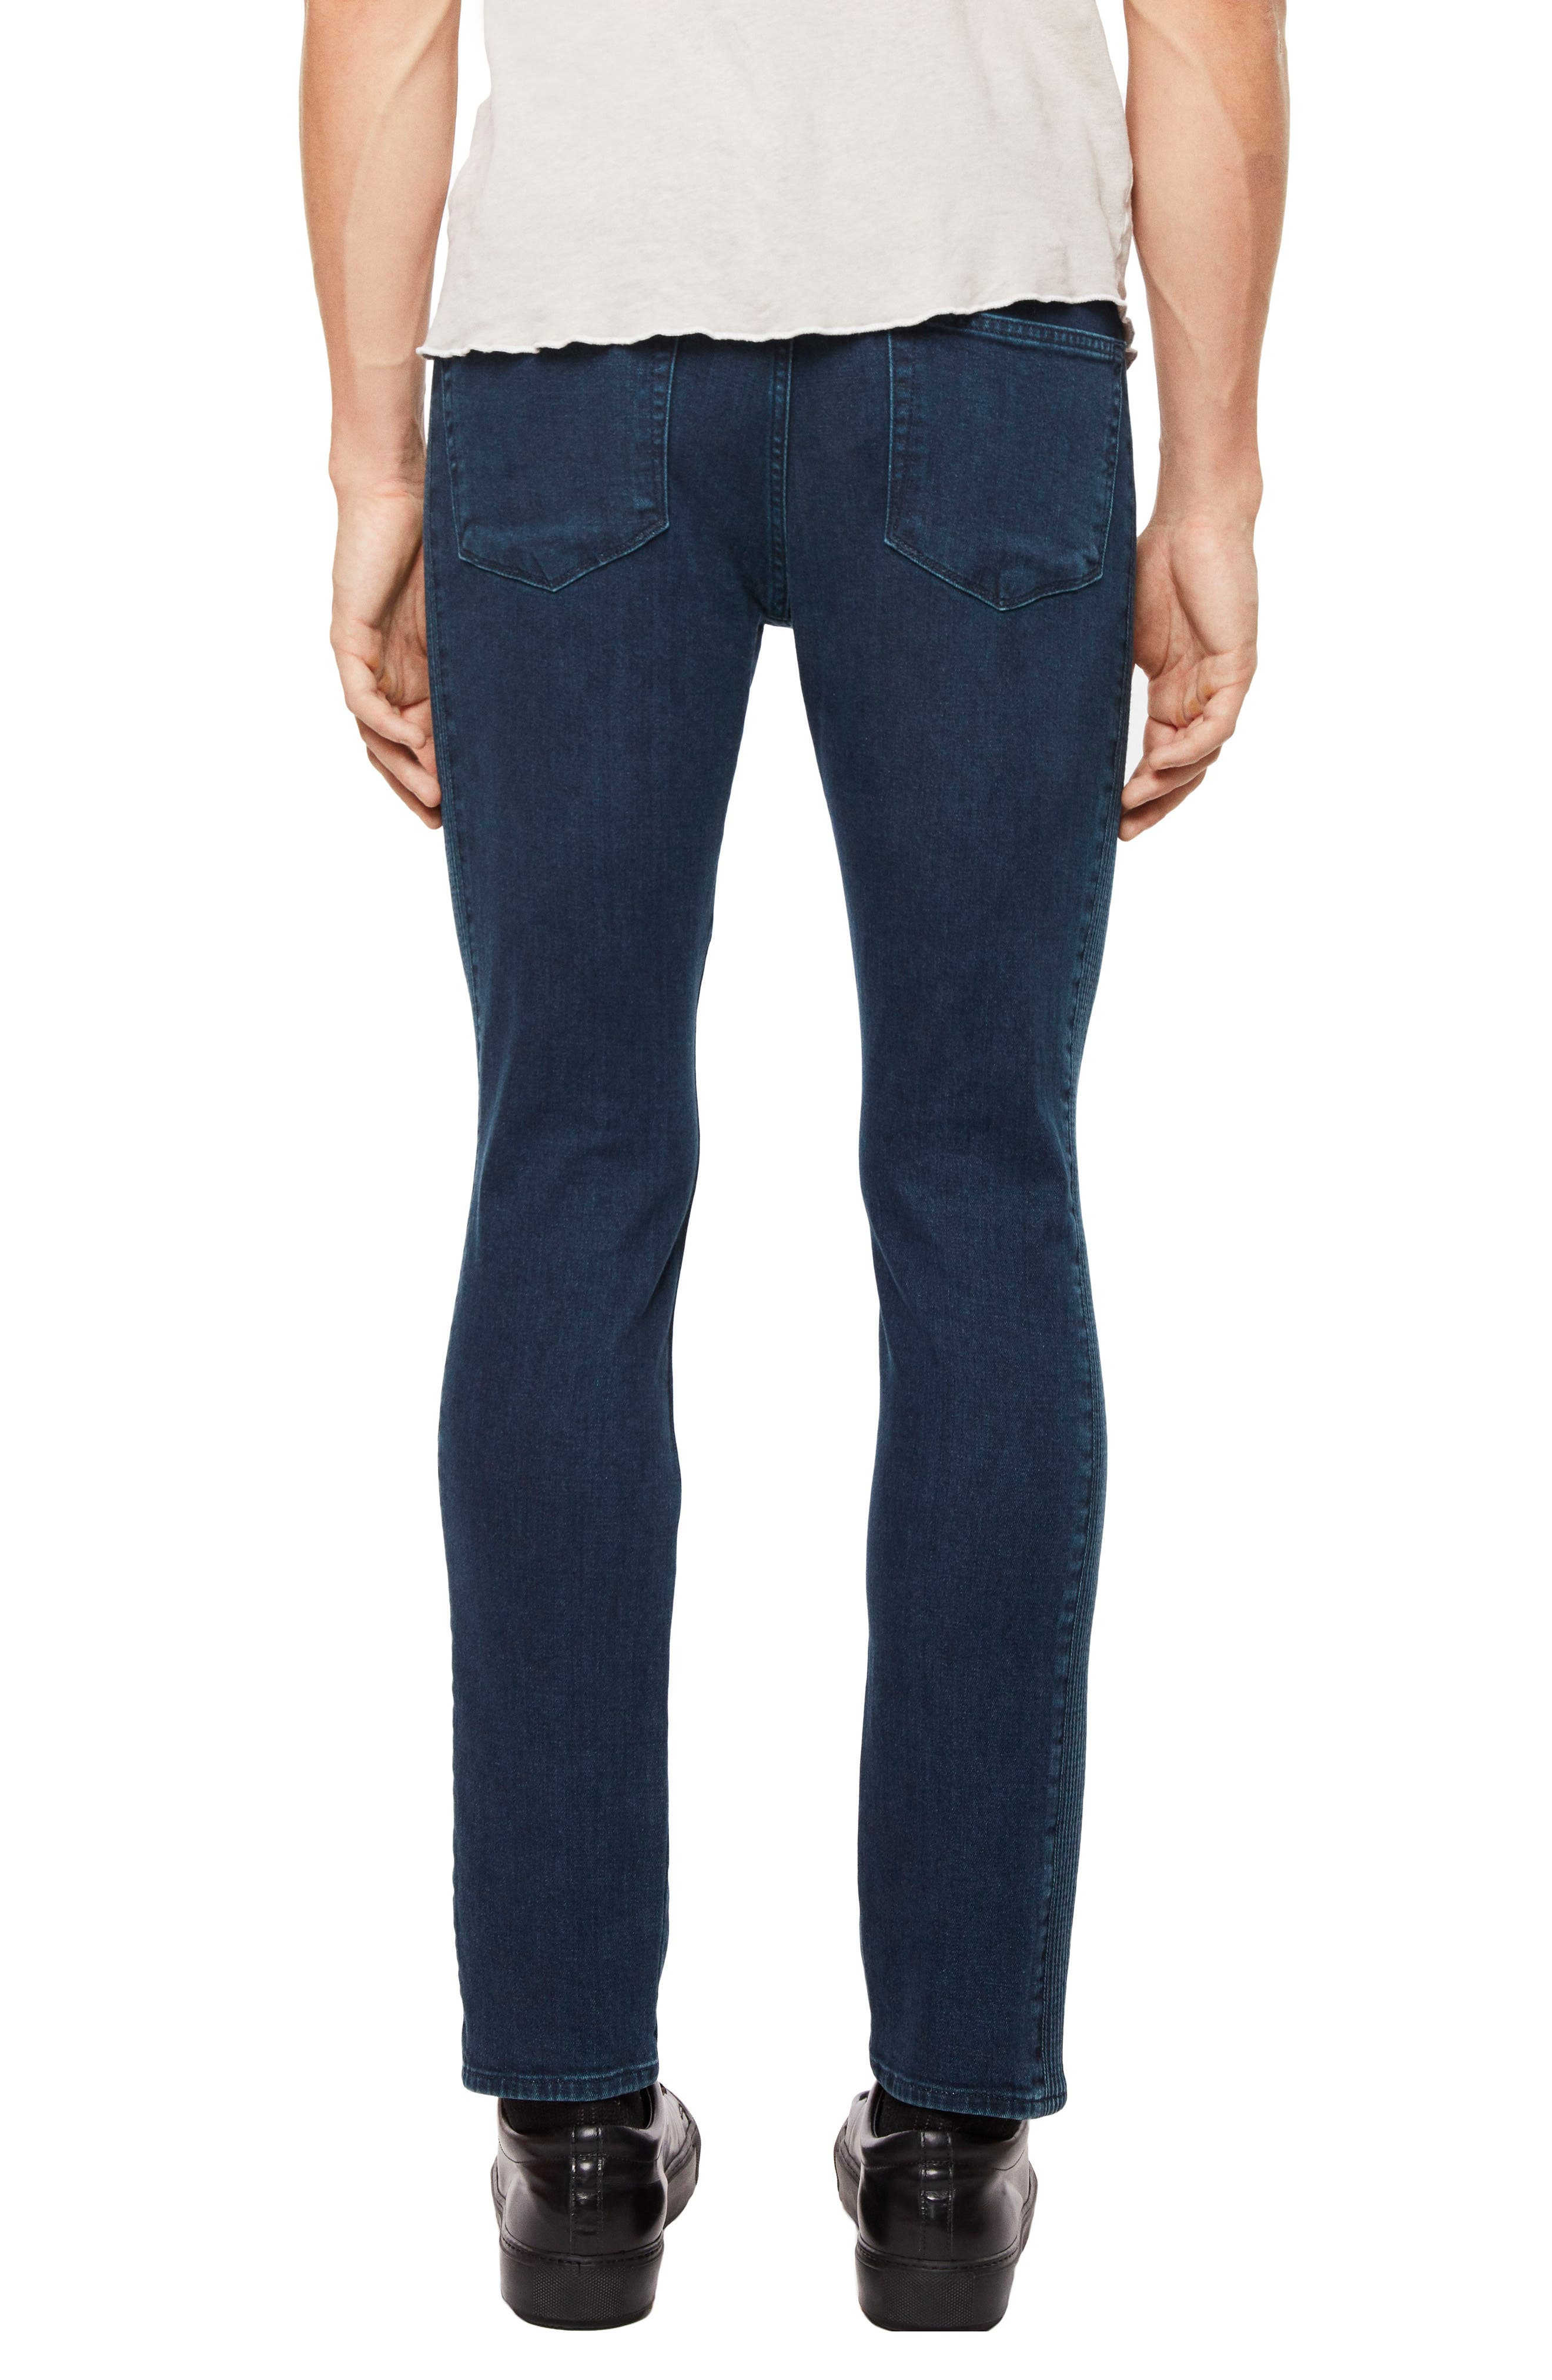 Moto Skinny Fit Jeans,                             Alternate thumbnail 2, color,                             Afantic